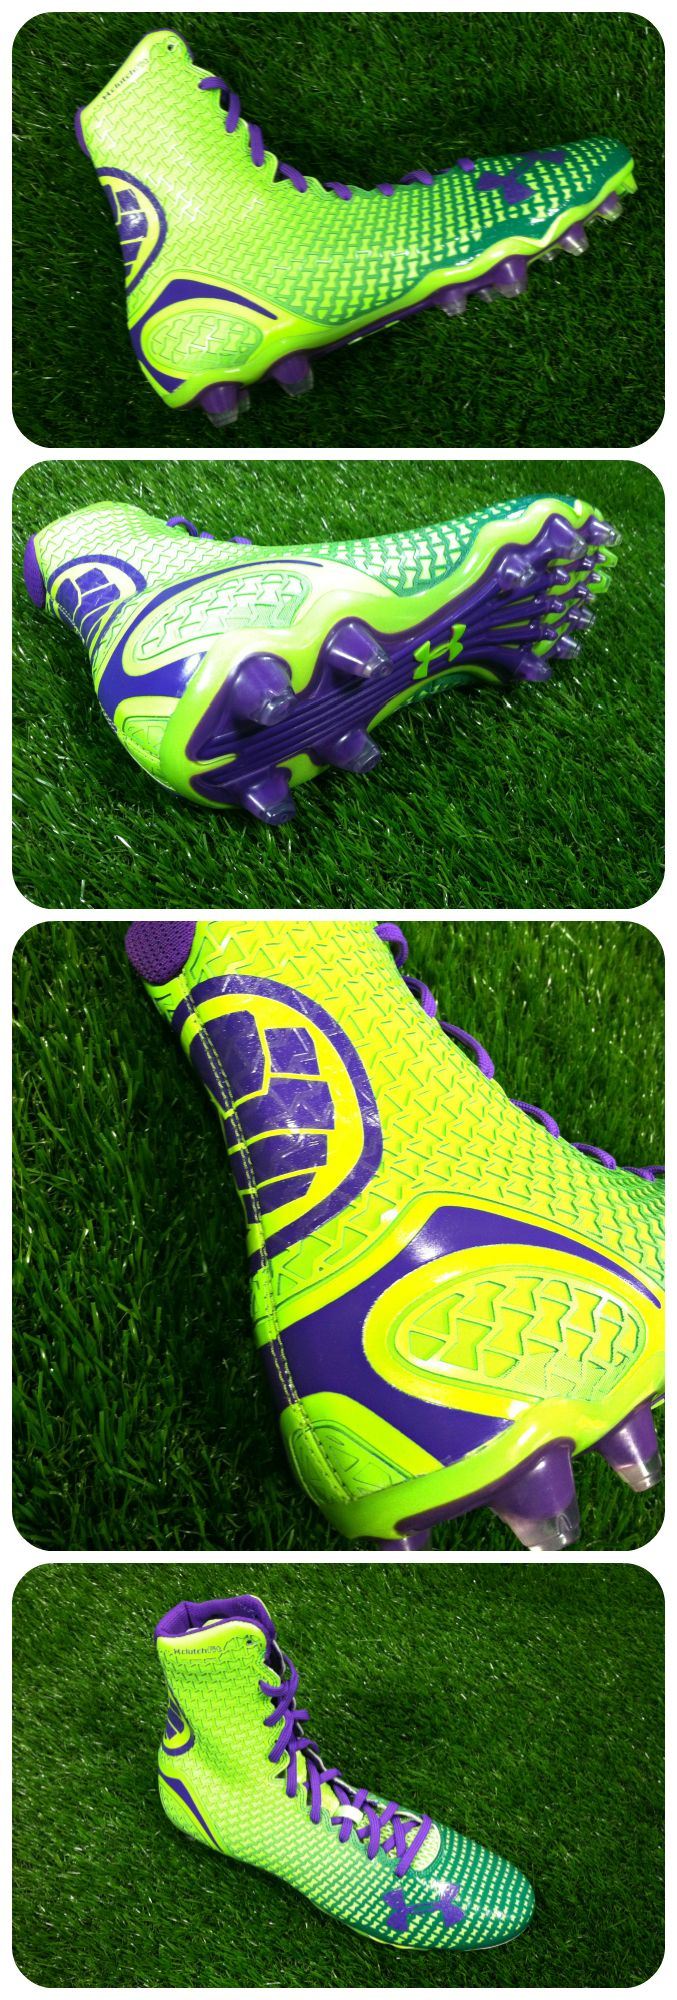 Suit up as your alter ego this season. Get the Hulk-inspired Under Armour Highlight Cleat now.